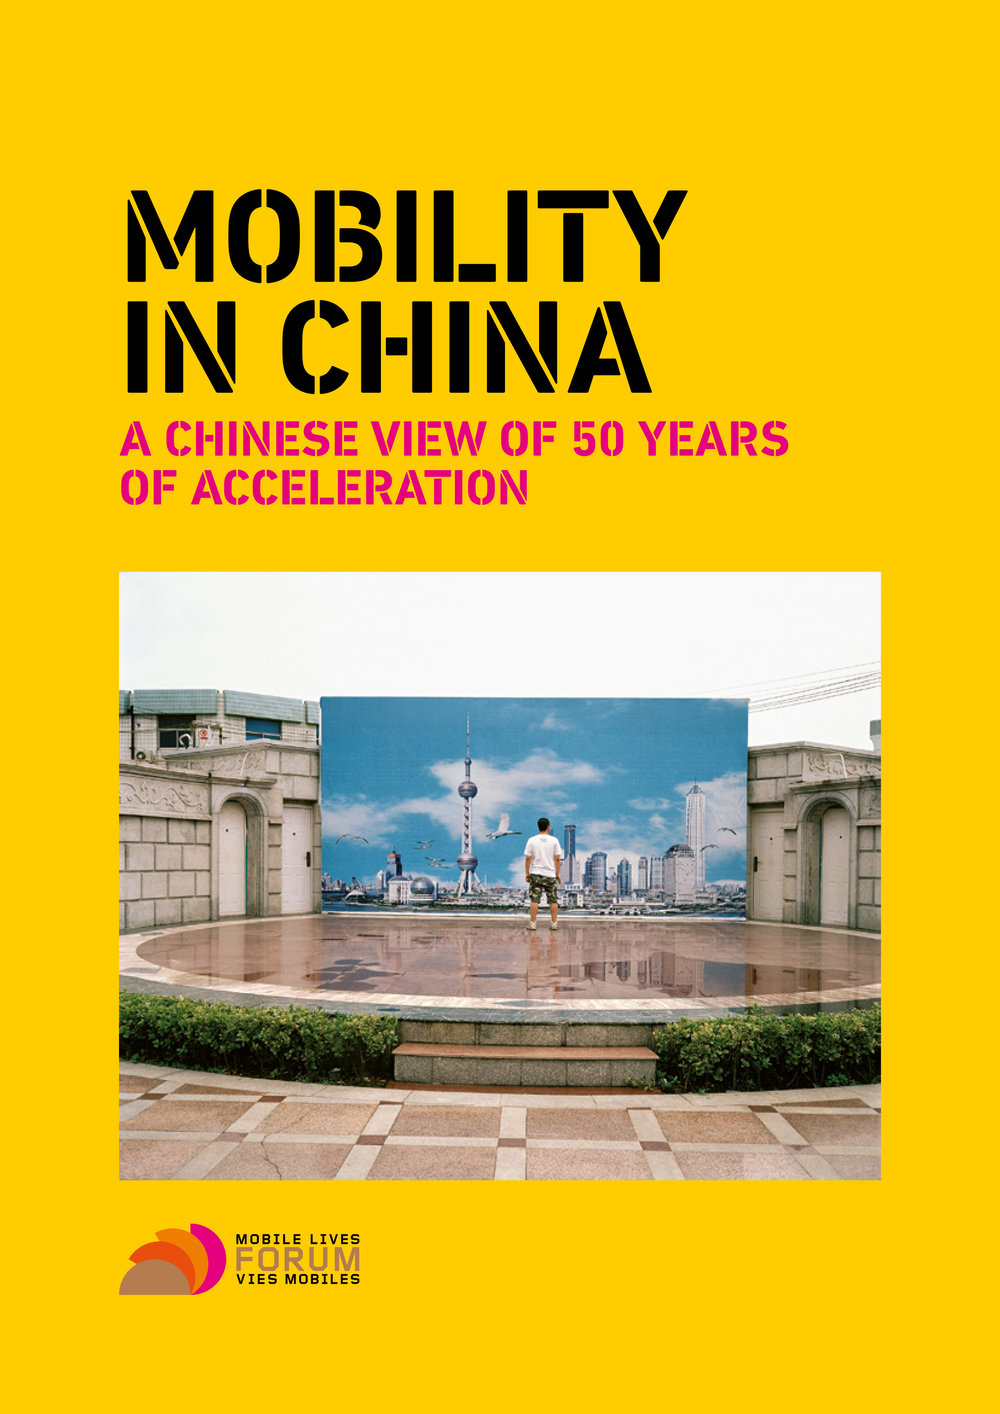 FVMMobility in China - Corporate Book Design for French Railways + Think TankSNCF / Forum Vies Mobiles.Client: SNCF / Forum Vies Mobiles / Éditions Loco